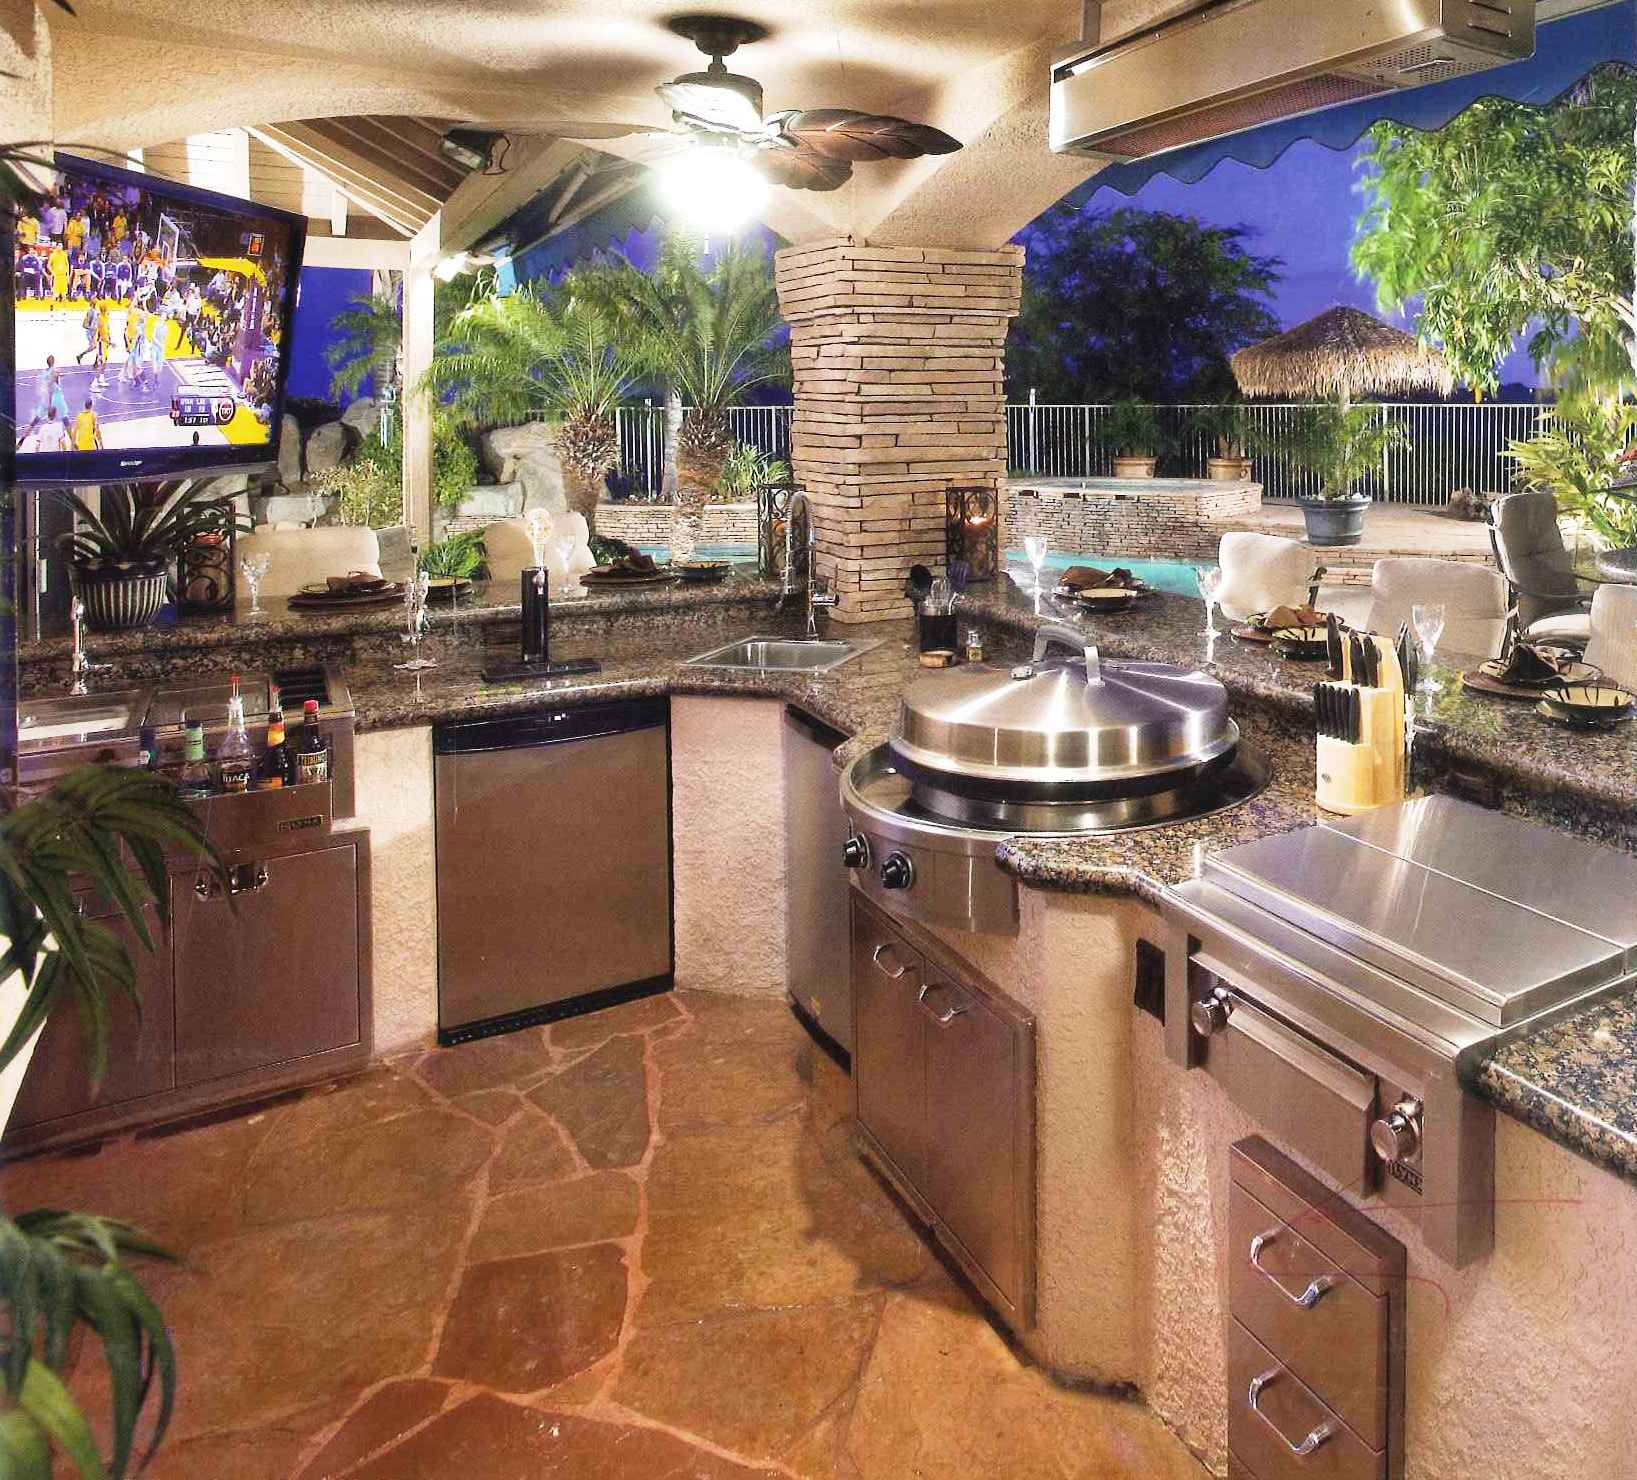 Design services ltd a day in the life of a designer for Design your outdoor kitchen